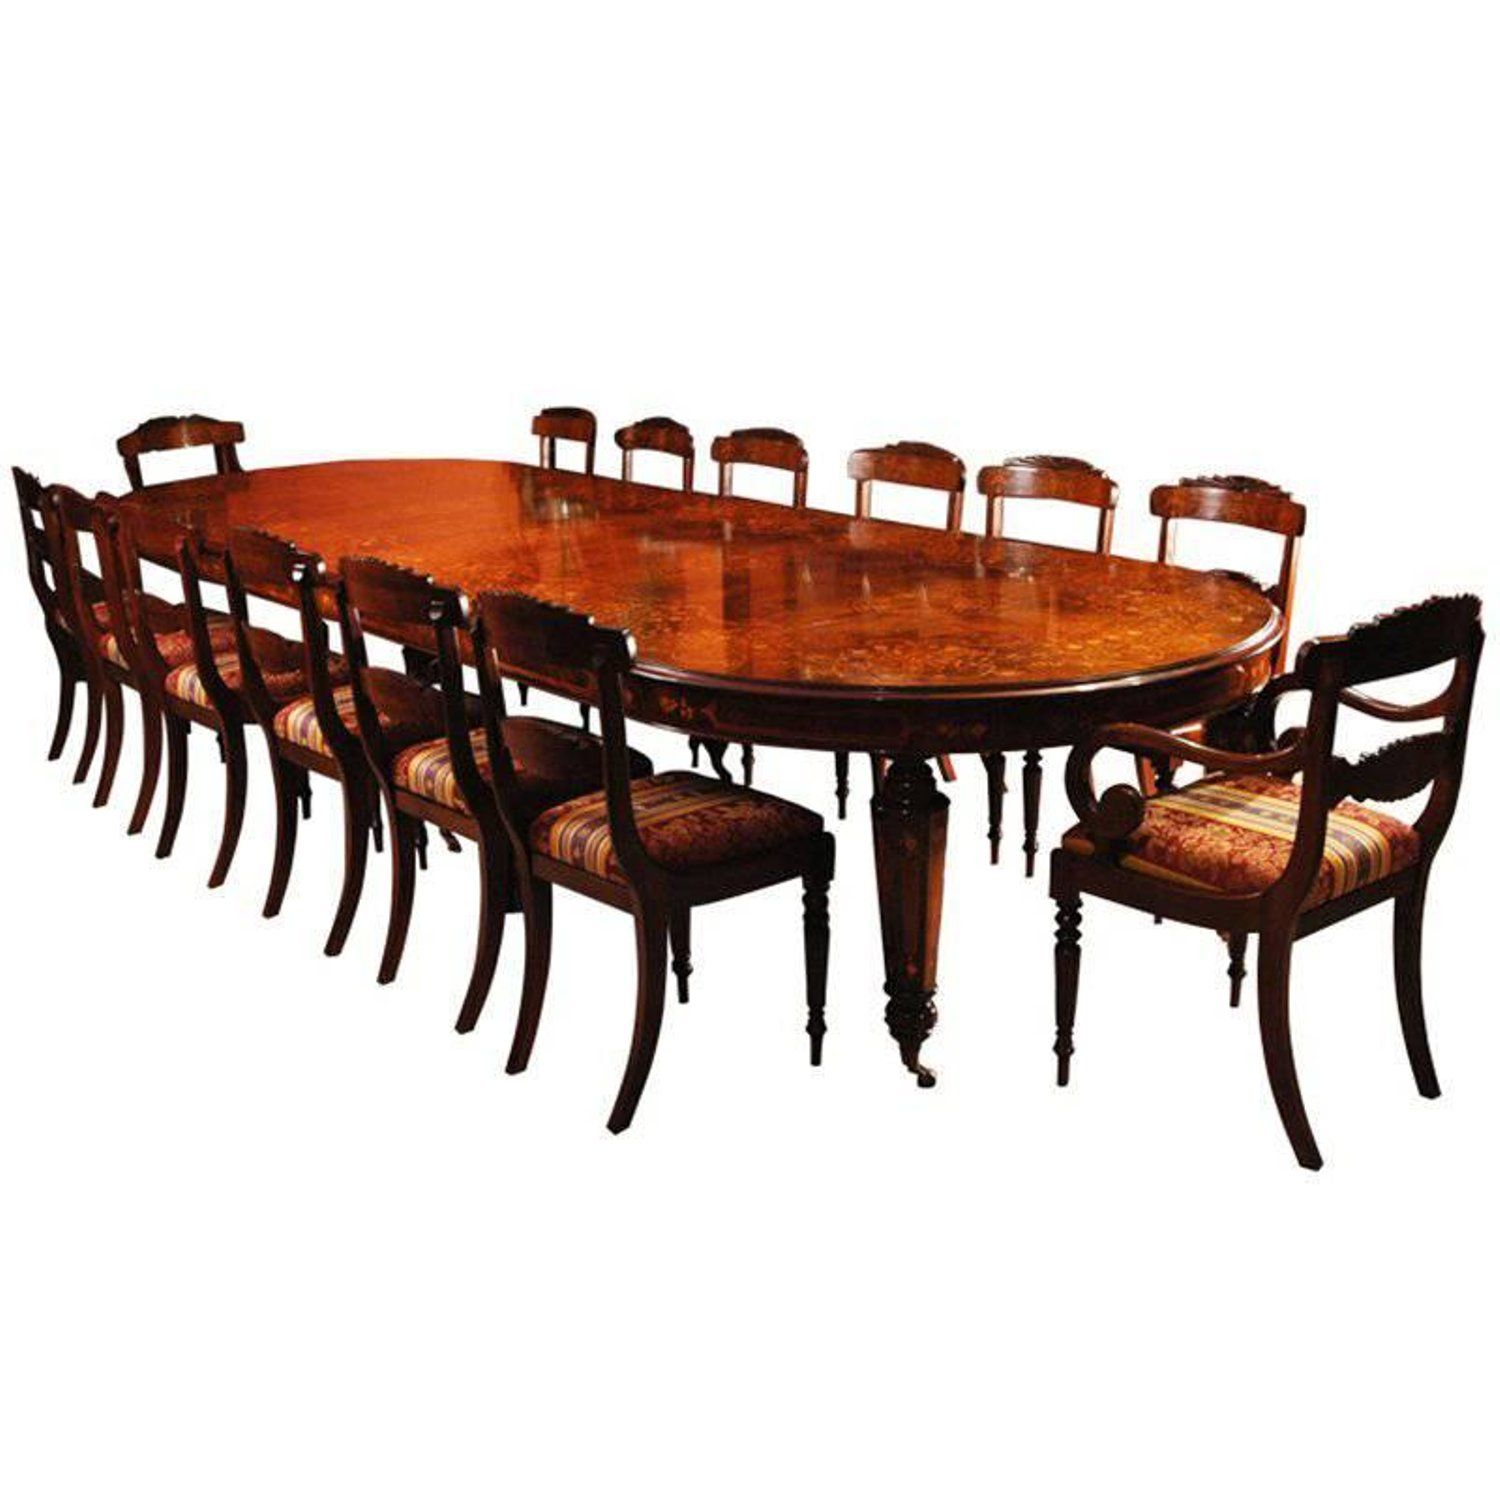 Bespoke Handmade Marquetry Burr Walnut Dining Table And 14 Chairs